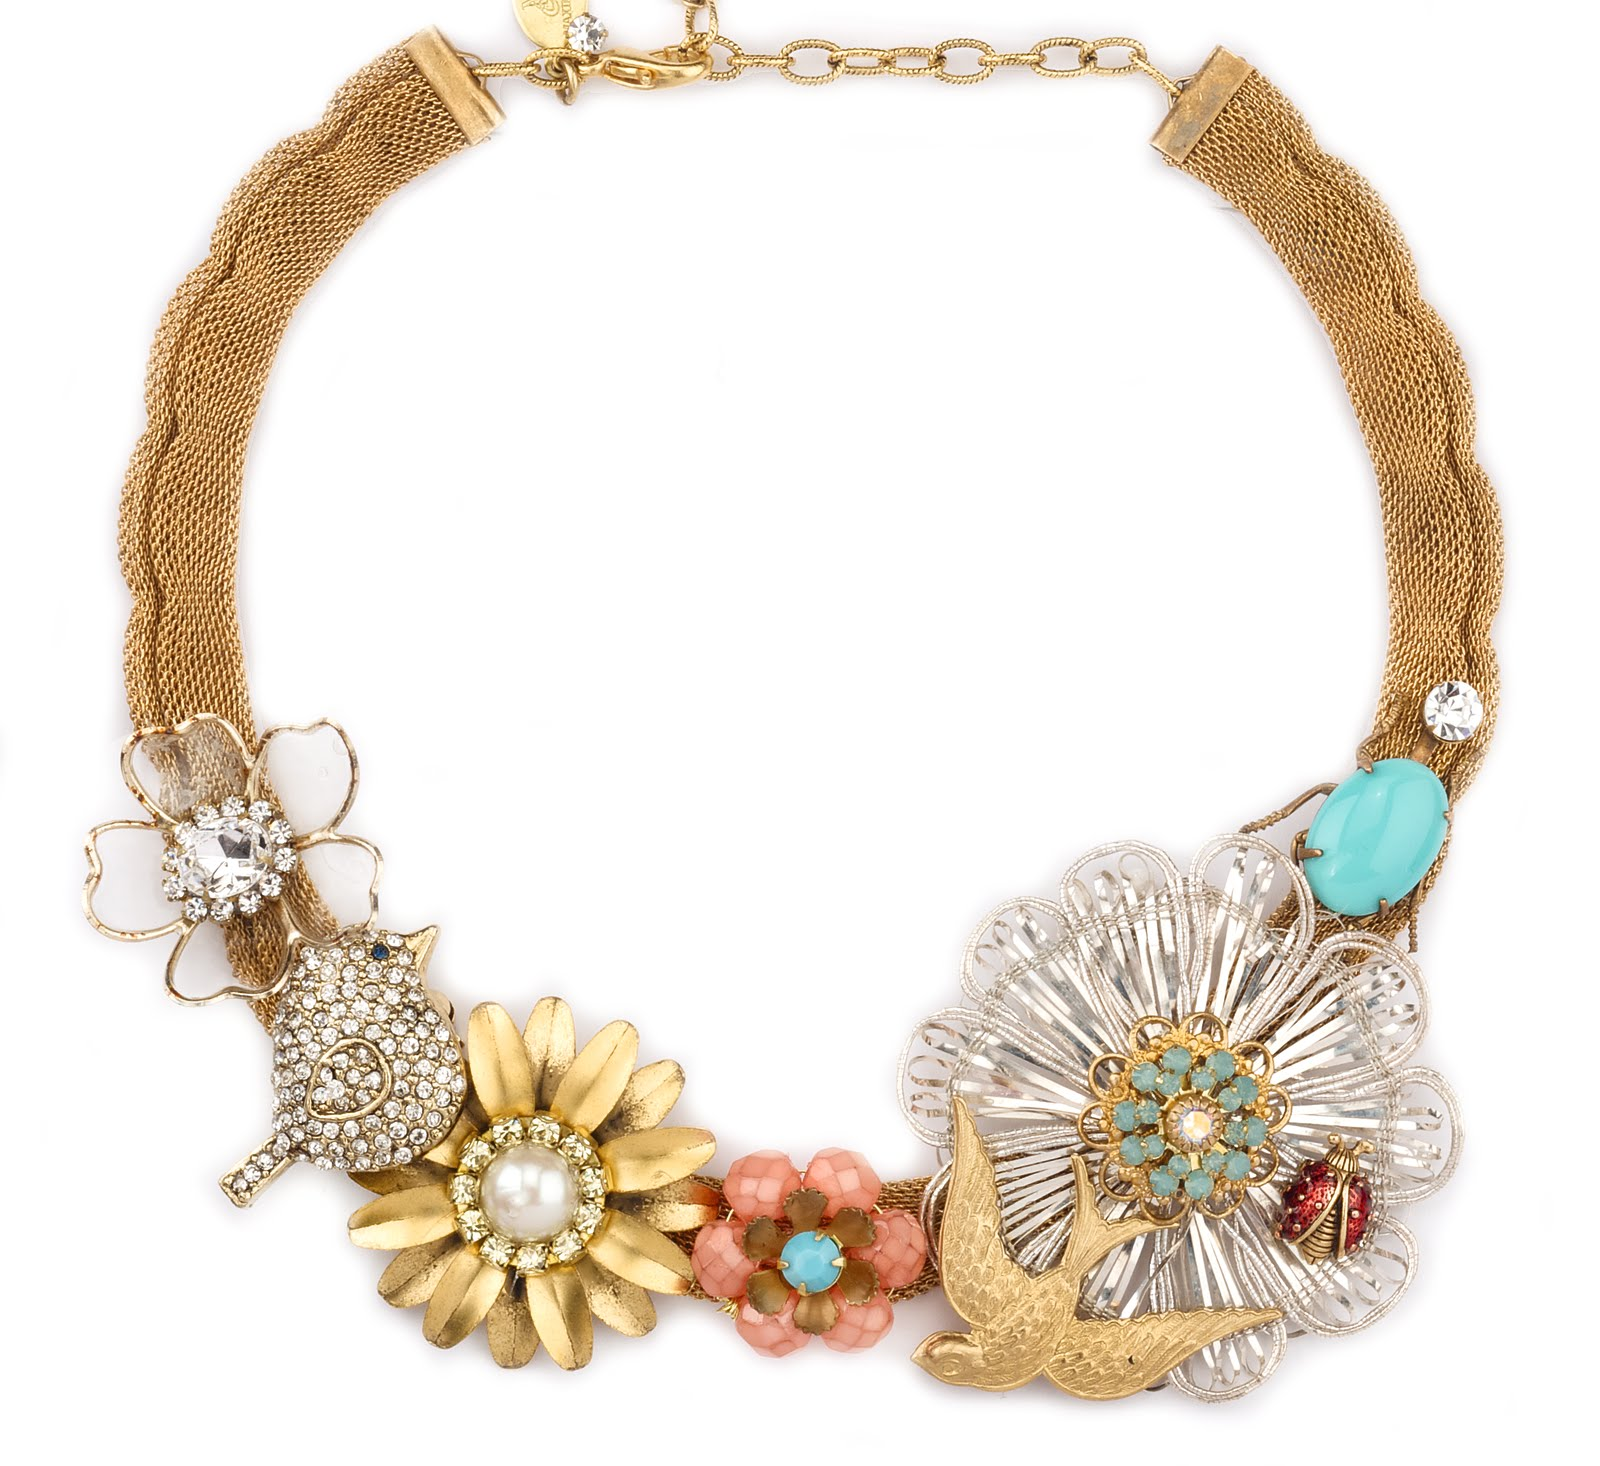 Modern Jewellery Designs Modern Jewellery Vintage Delight And a